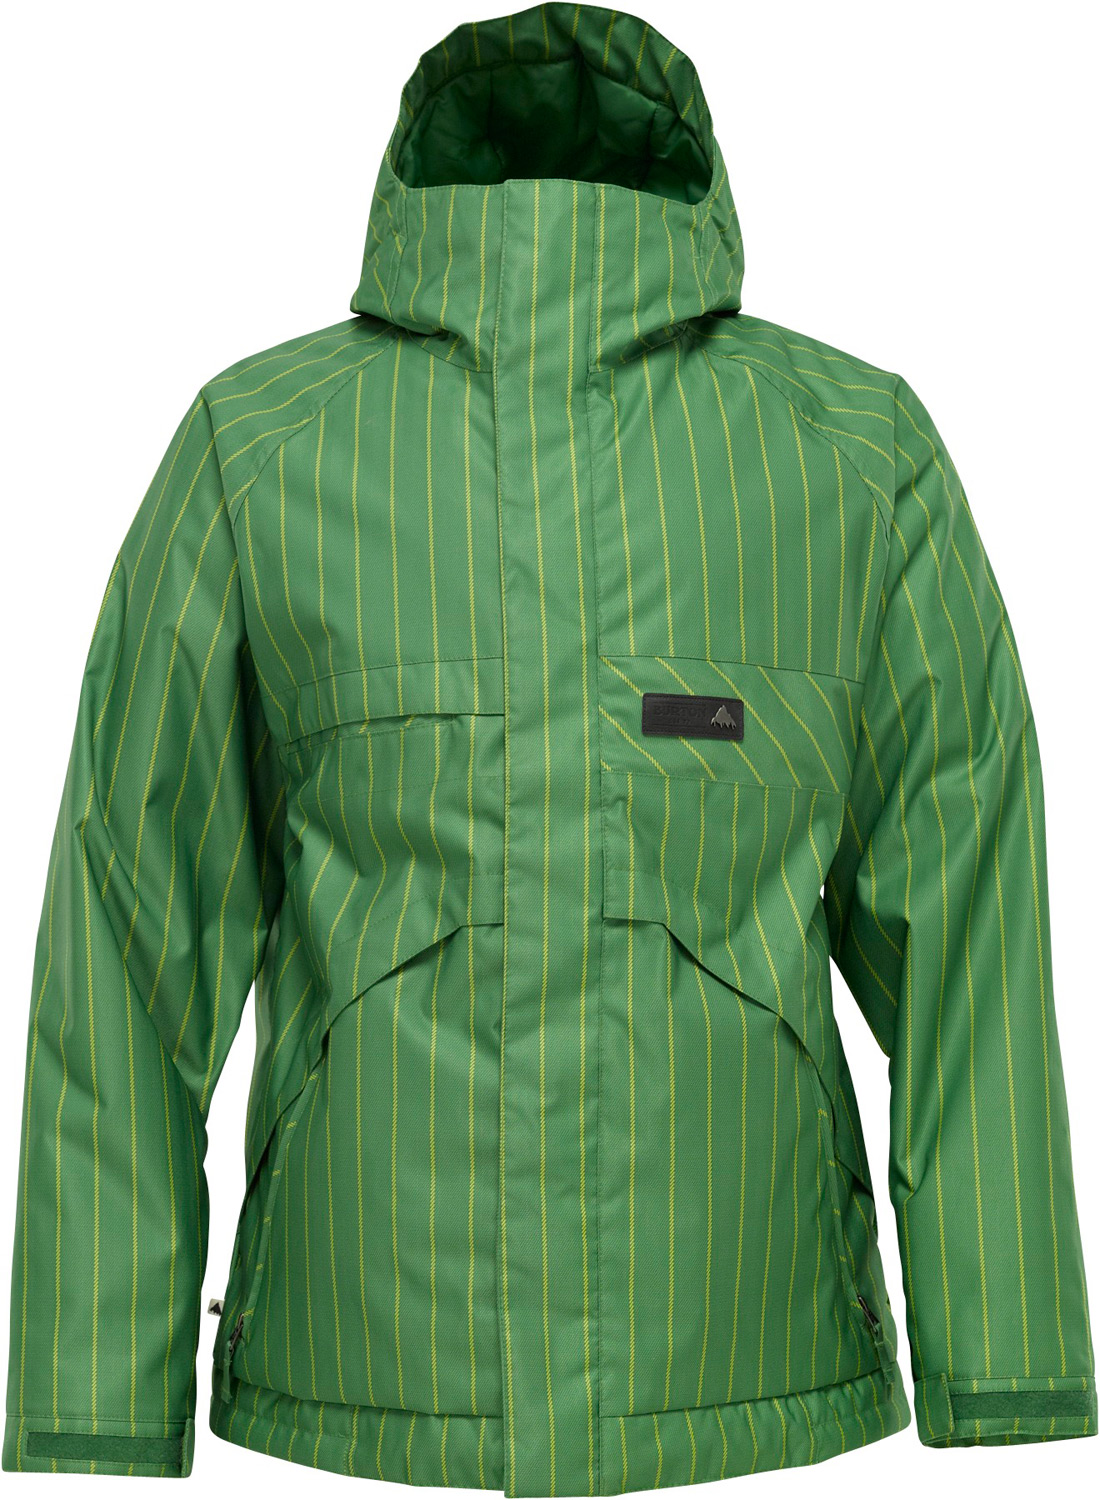 Snowboard You'll be hard pressed to find more features and performance for the money.Key Features of the Burton Poacher Snowboard Jacket: 10,000mm Waterproof 5,000g Breathability DRYRIDE Durashell Sig Fit NEW Double Package Trail Mapping: Taffeta lining w/NEW Zonal 3M Thinsulate Insulation (60G Body/40G Sleeves) Printed Brushed Plain Weave Fabric (Printed Colorways) Pit Zips NEW 3M Thinsulate Insulation [Excluding Shells] Stretch Waist Gaiter with Jacket-to-Pant Interface NEW Antimicrobial Plush Collar Pocket Access Hem Cinch Goggle/Media Pocket Critically Taped Seams Raised Twill Fabric (Solid Colorways) Fulltime Contour Hood Interior Mesh Goggle Pocket w/Audio Stash DRYRIDE Fabrication with DWR Coating Microfleece-Lined Handwarmer Pockets Articulated Sleeves Engineered Lining Bomber YKK Zippers Contour Hood Chafe-Free Collar Adjustable Cuff Closures Jacket-to-Pant Interface Pass Pocket/Ticket O-Ring Taped Seams Adjustable Hood - $111.95